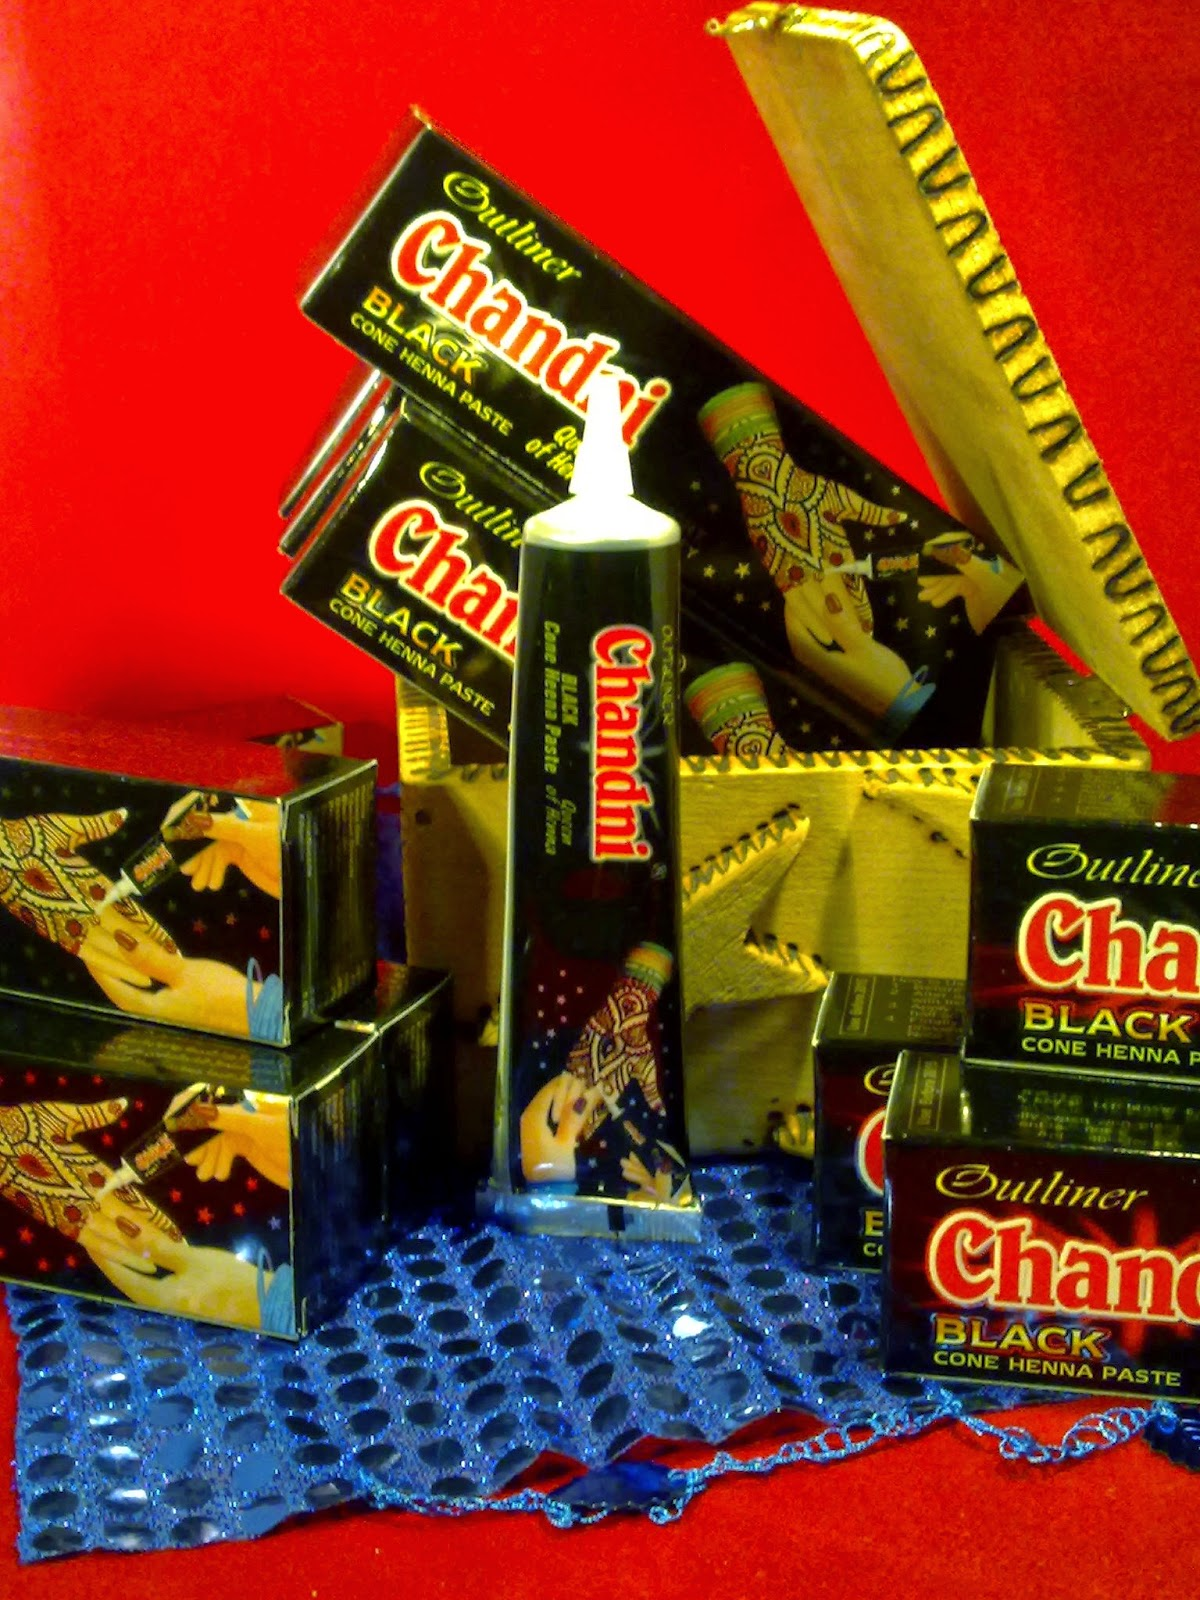 REVIEW CHANDNI HENNA ITA Review